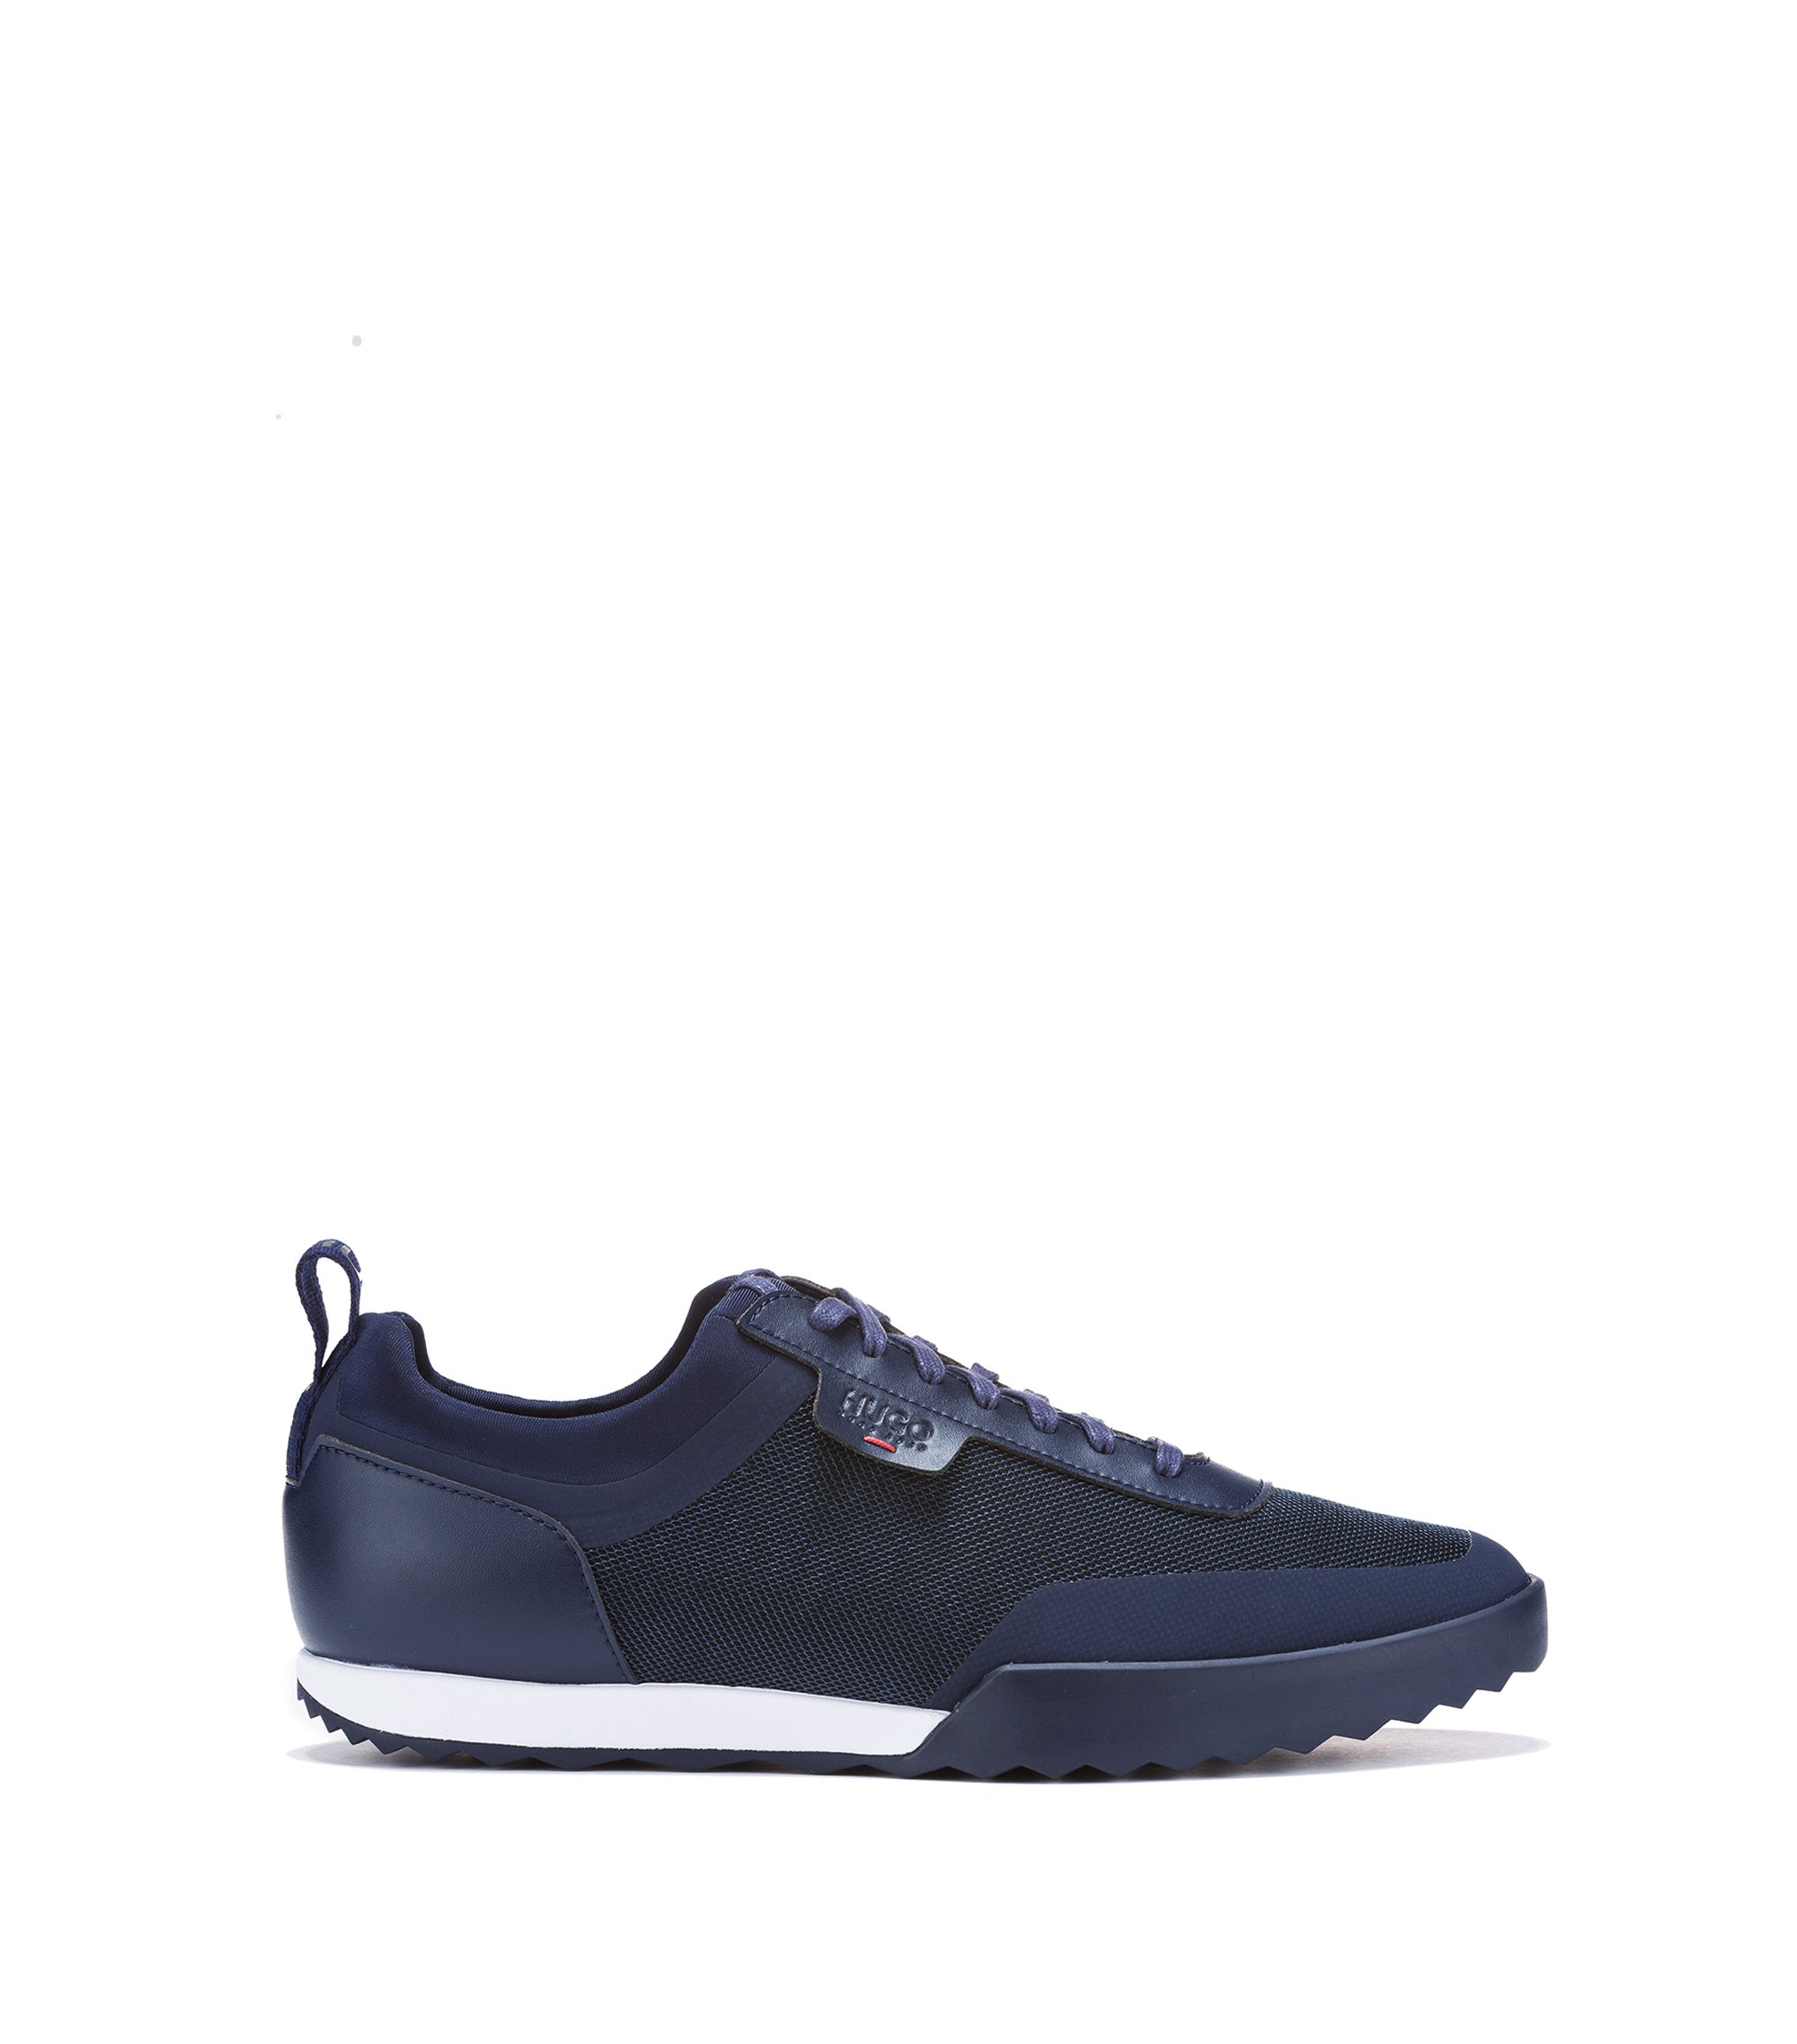 Sneakers low-top in tessuto tecnico misto, Blu scuro